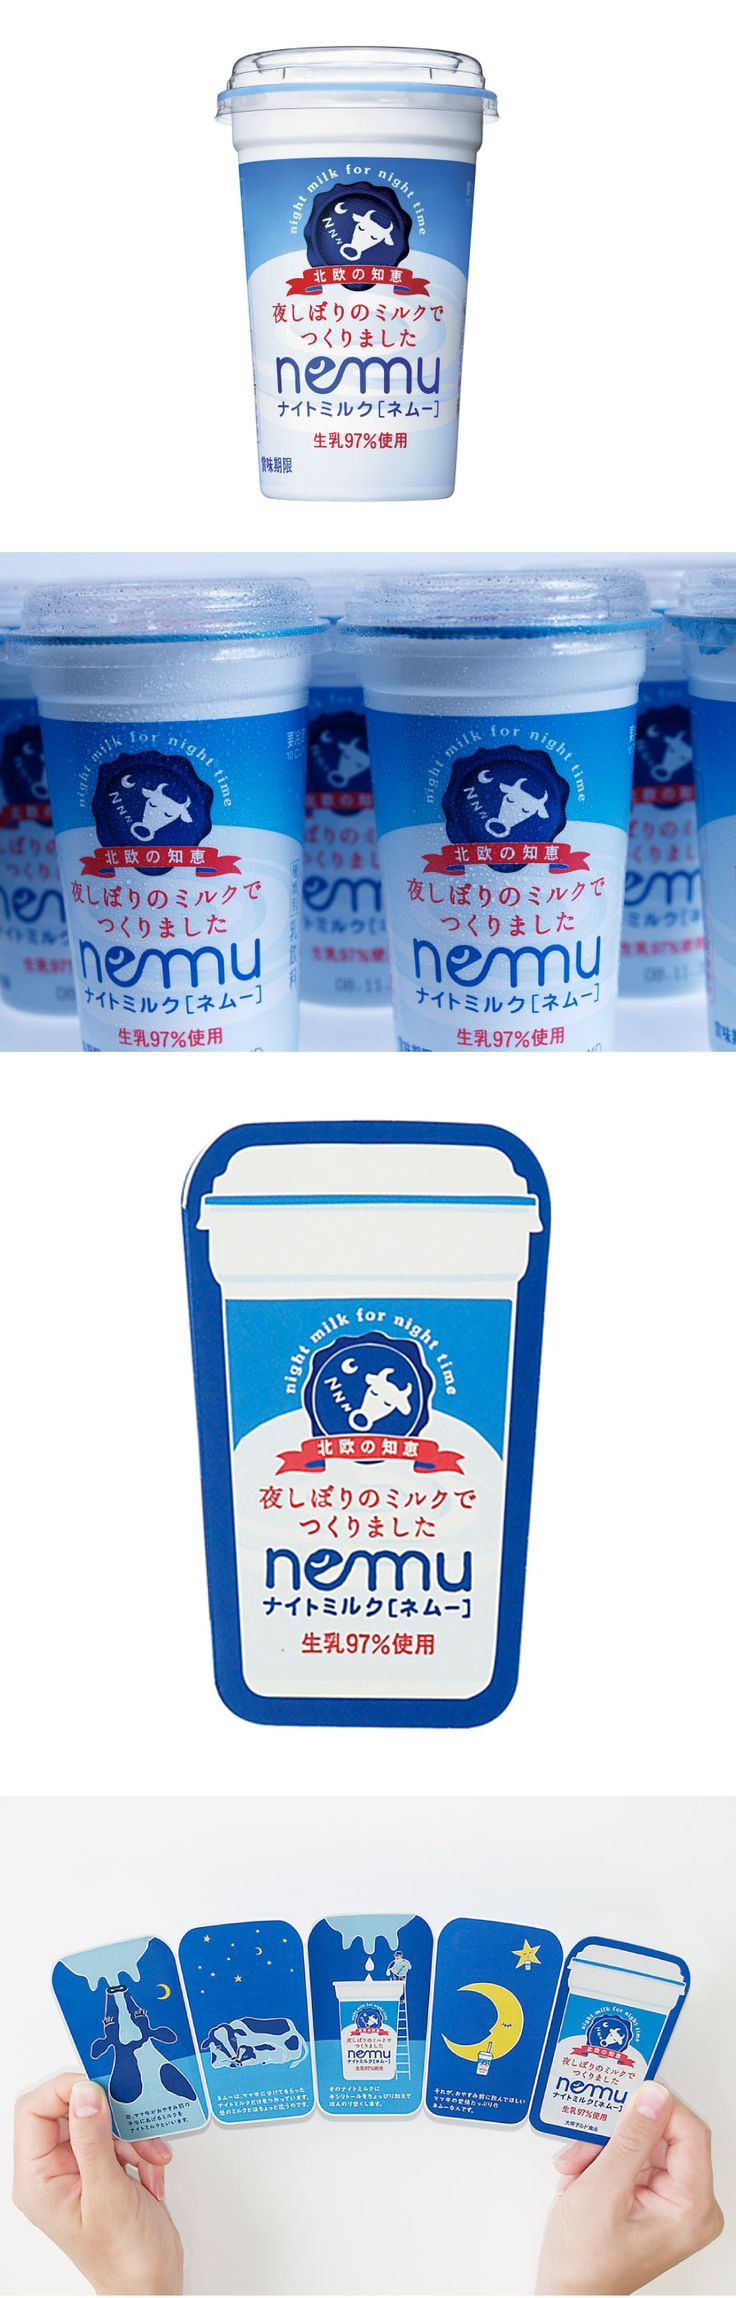 Nesmu dairy packaging